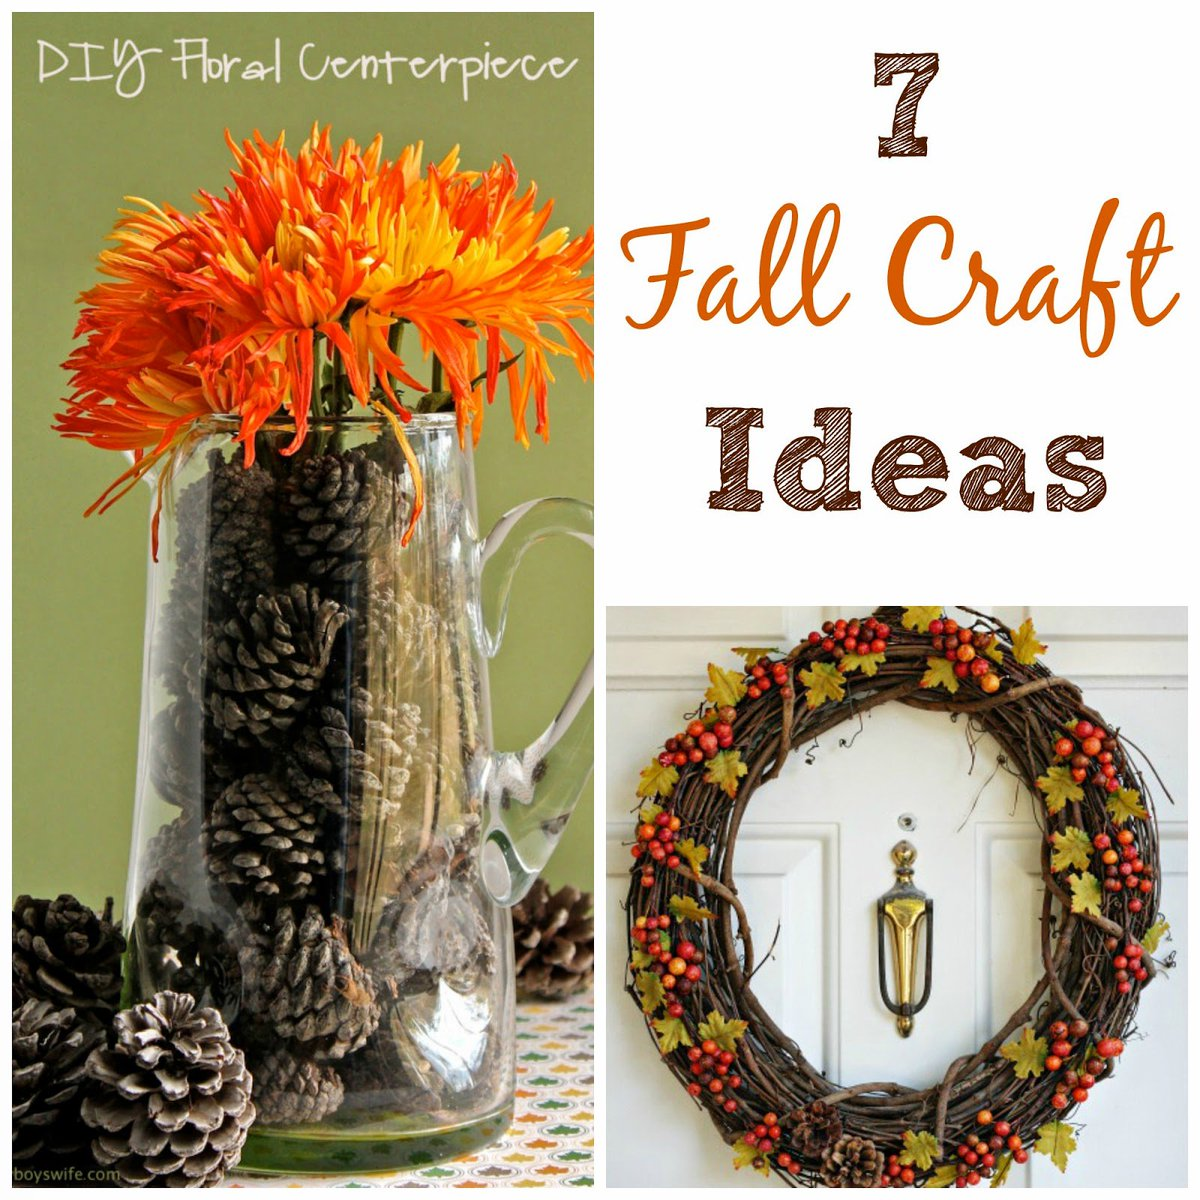 Top Fall Crafts for Friday #crafts #DIY